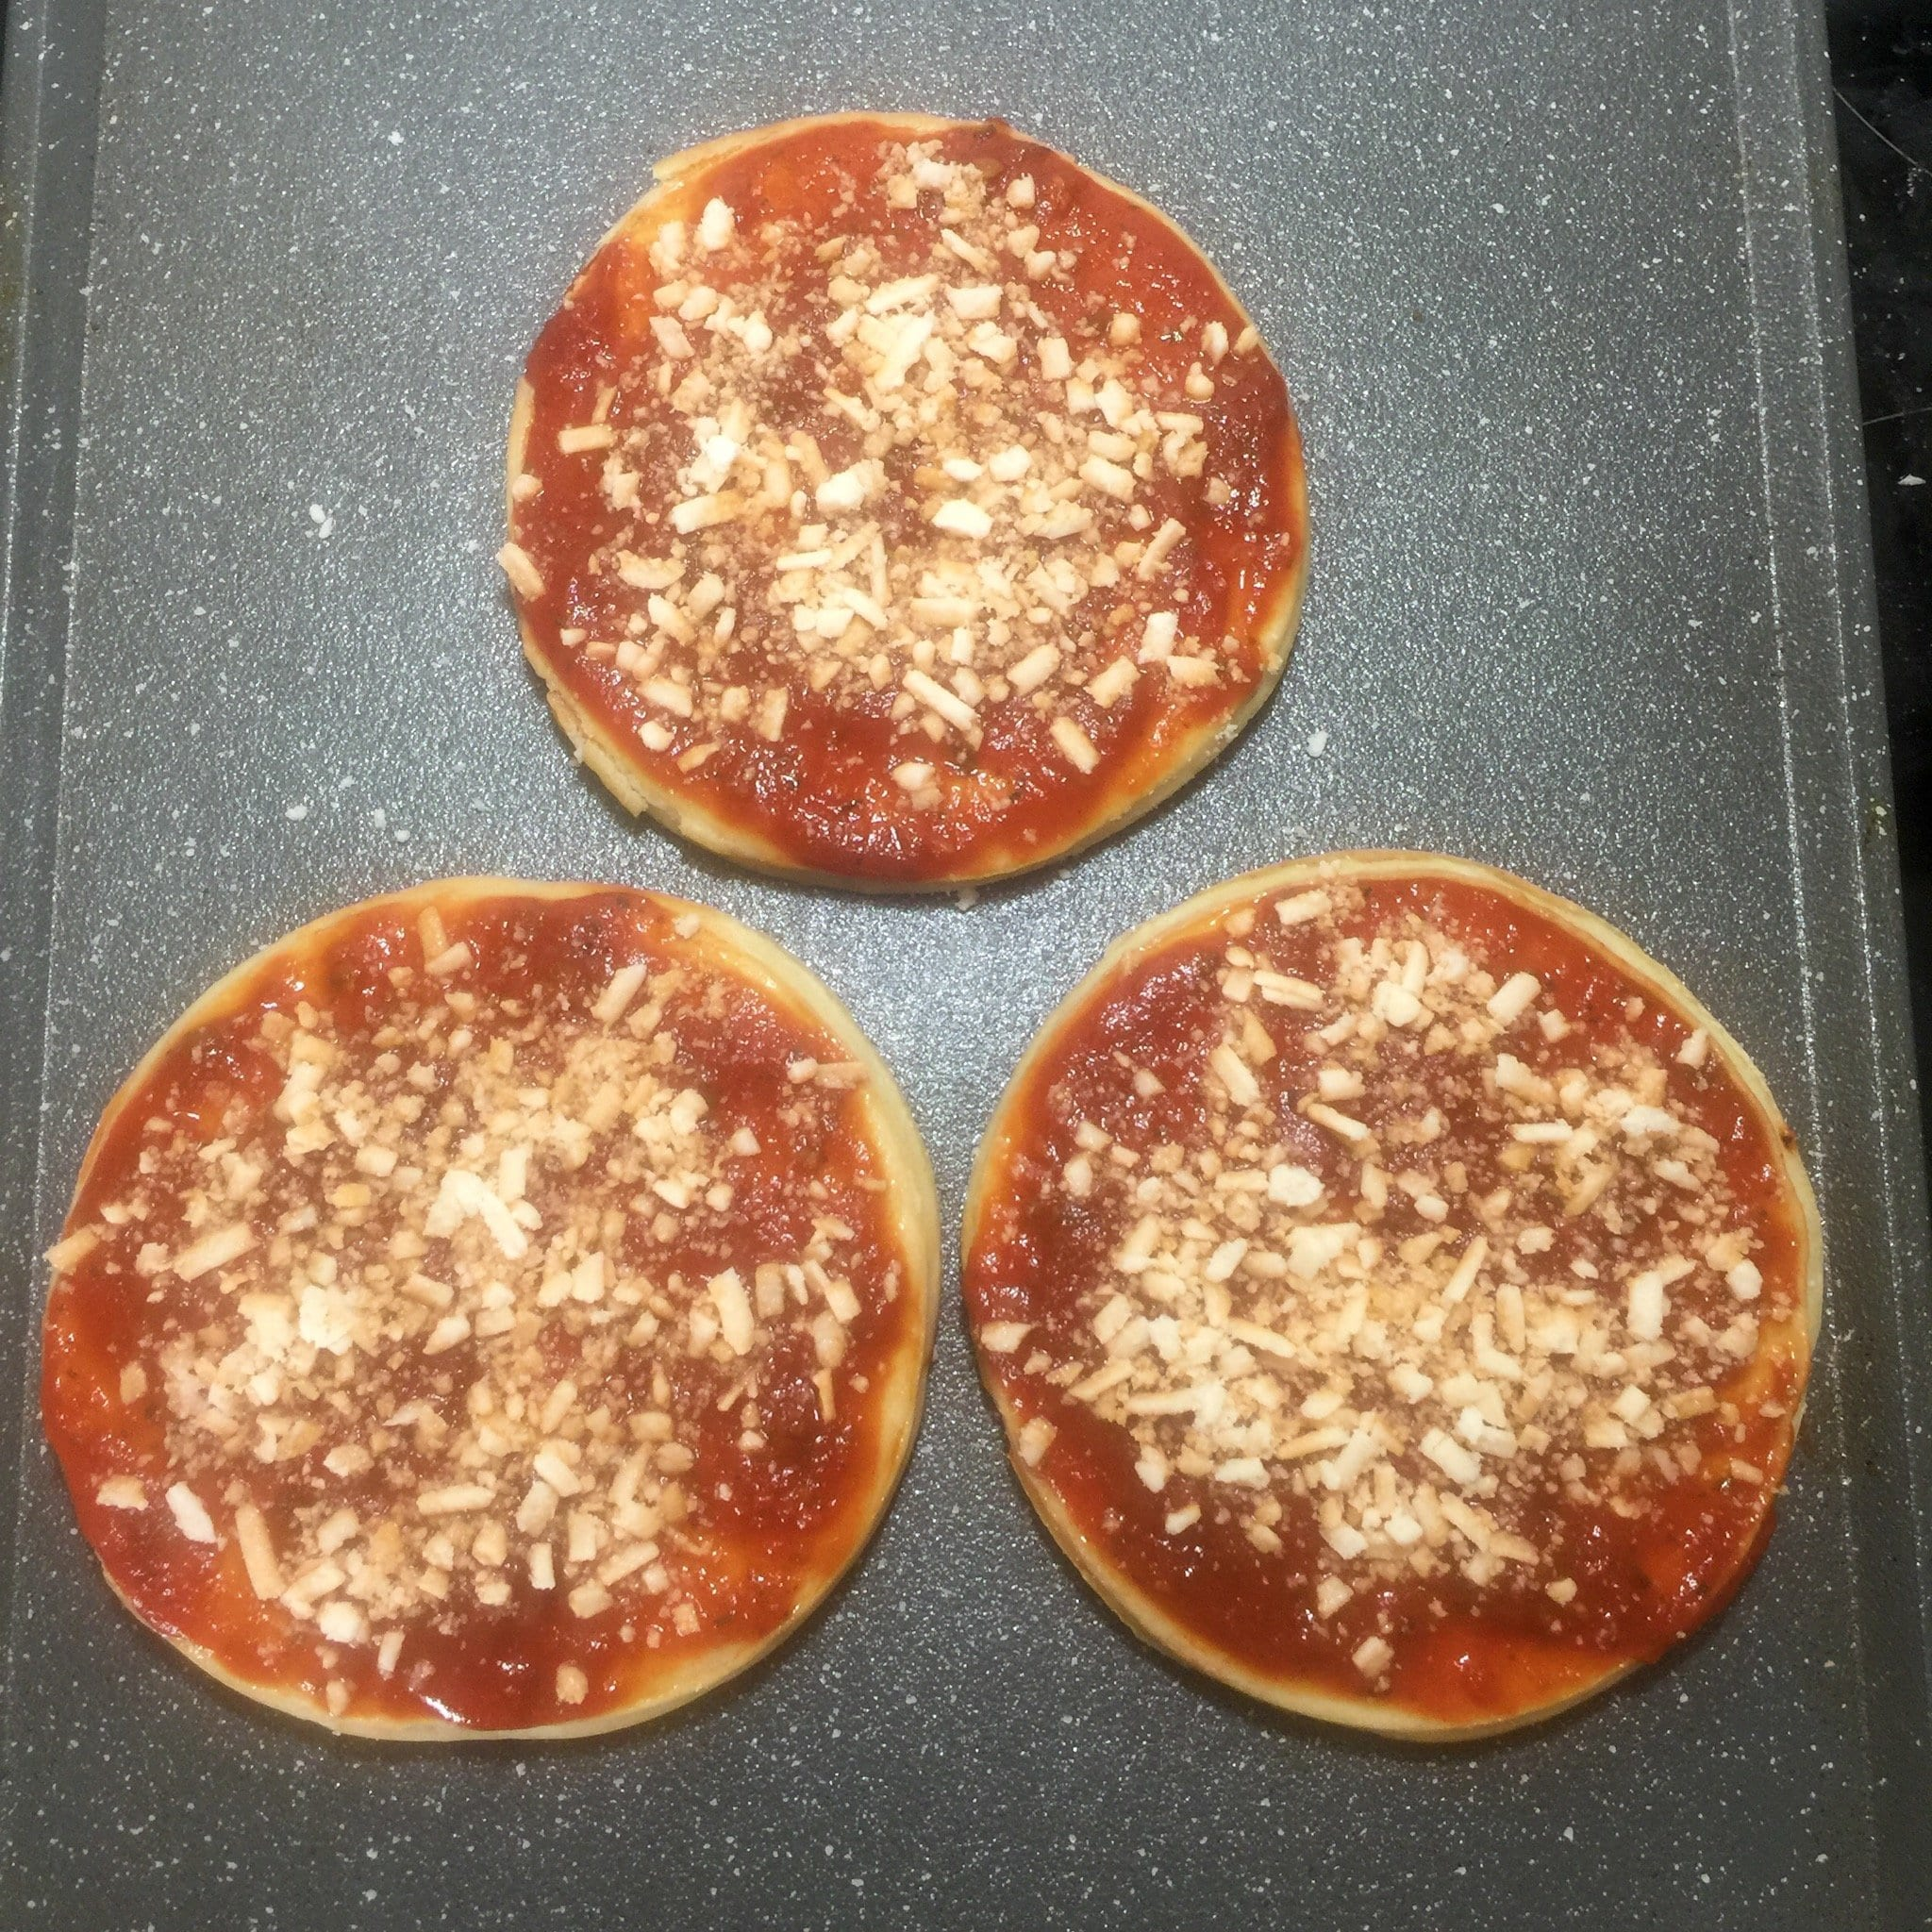 cheese on the mini pizzas